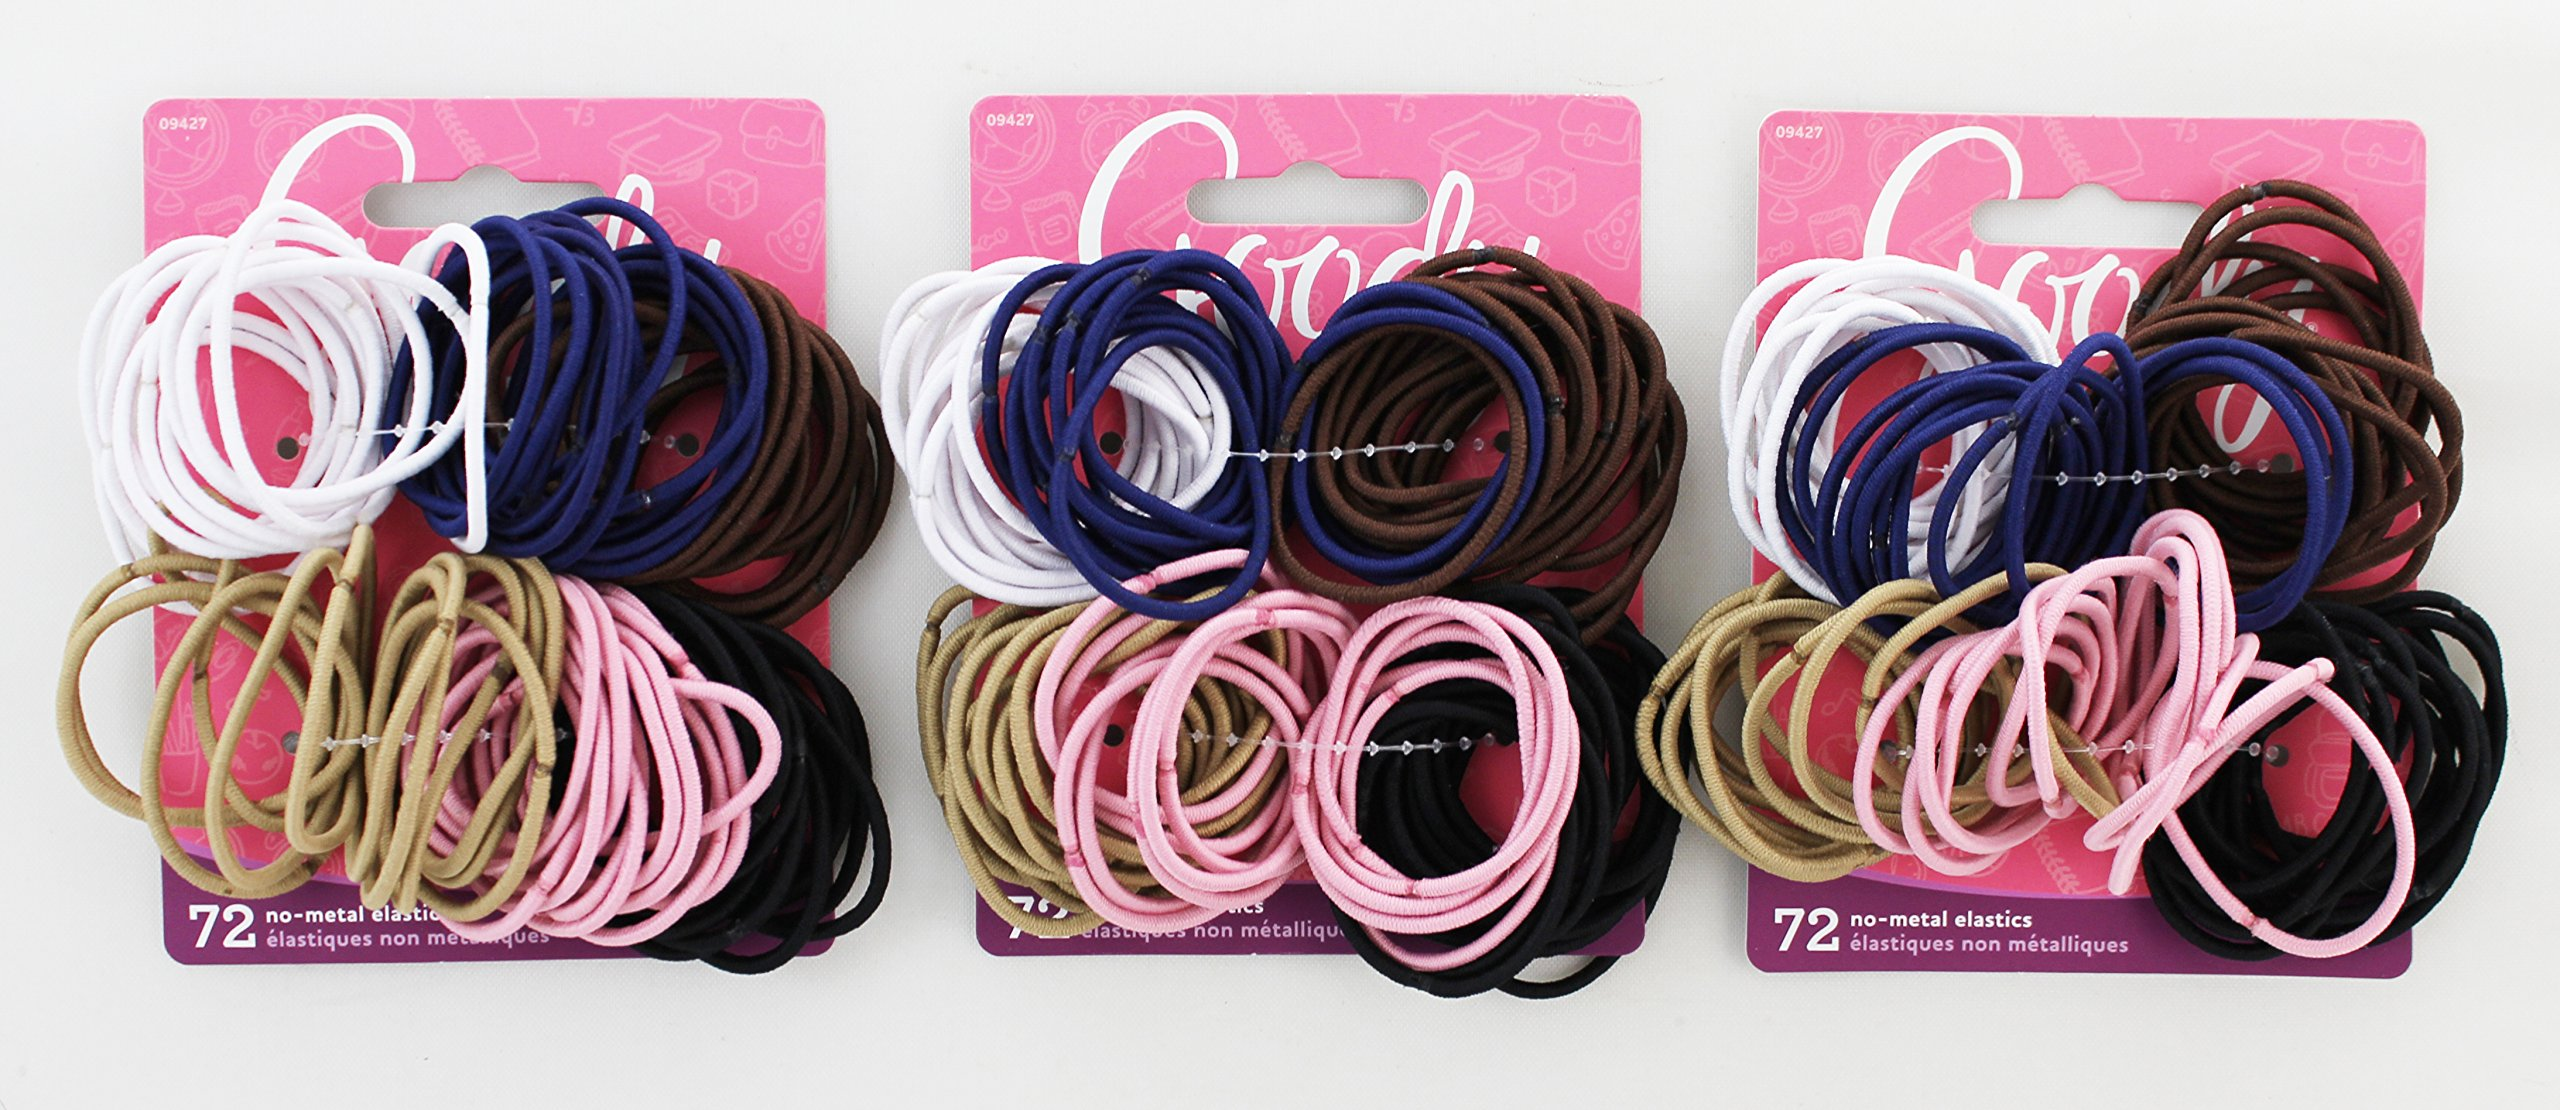 Goody - Ouchless No Metal Gentle Elastics, Assorted Colors, 72 pack (4-Pack)